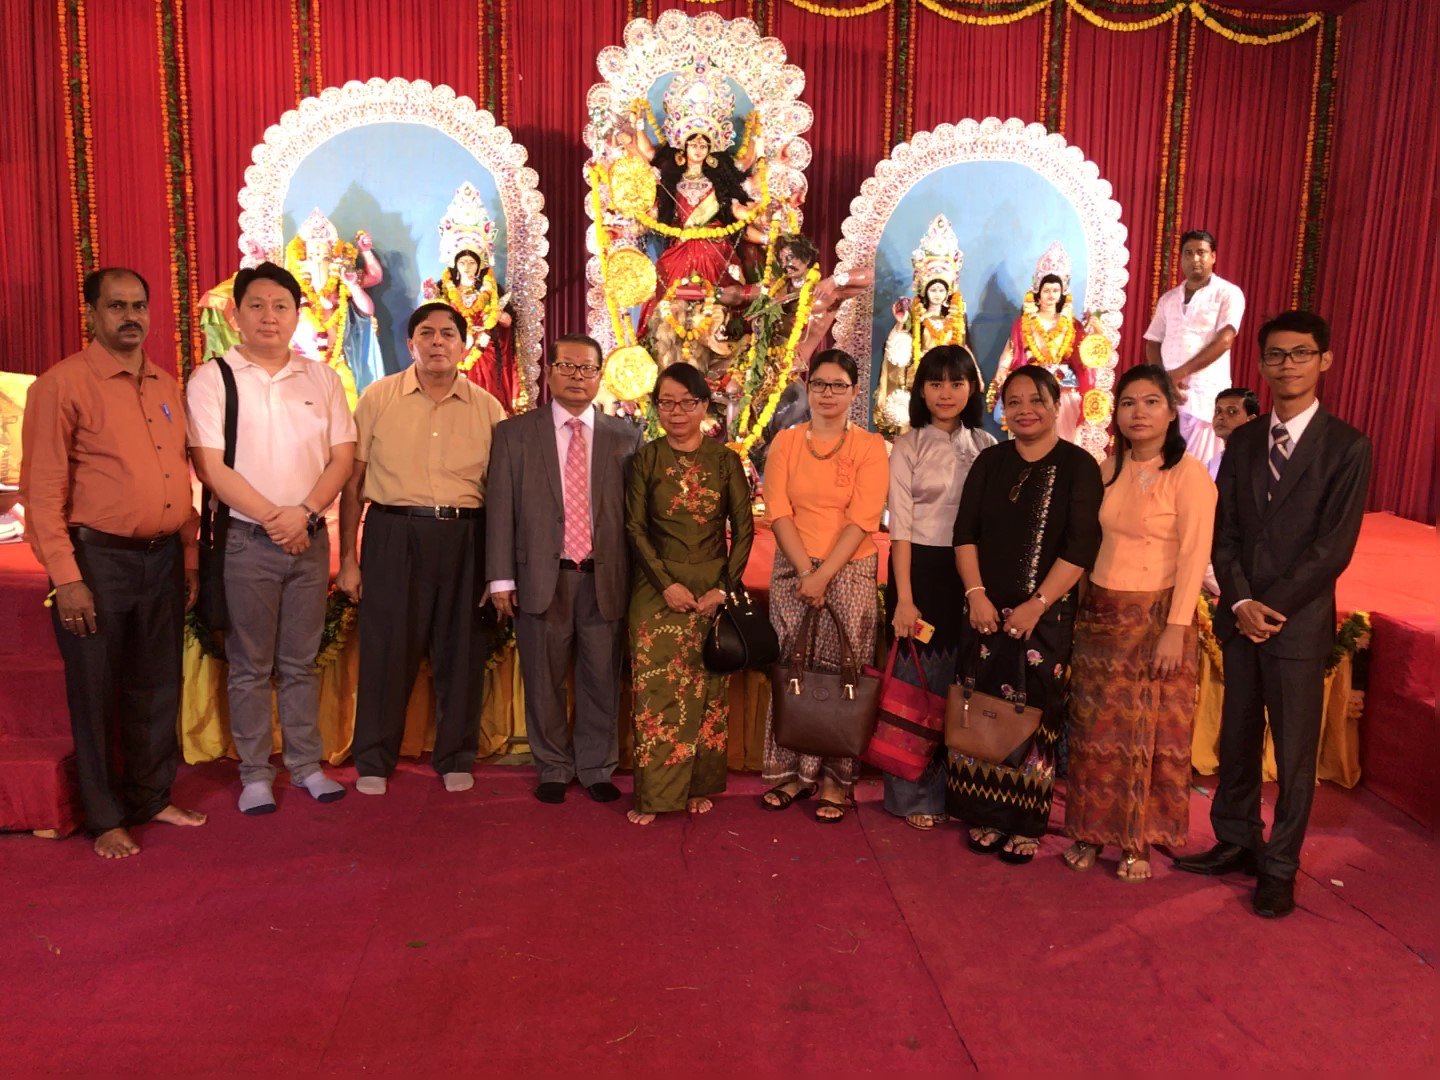 Members of Embassy of Myanmar participate in Durga Puja